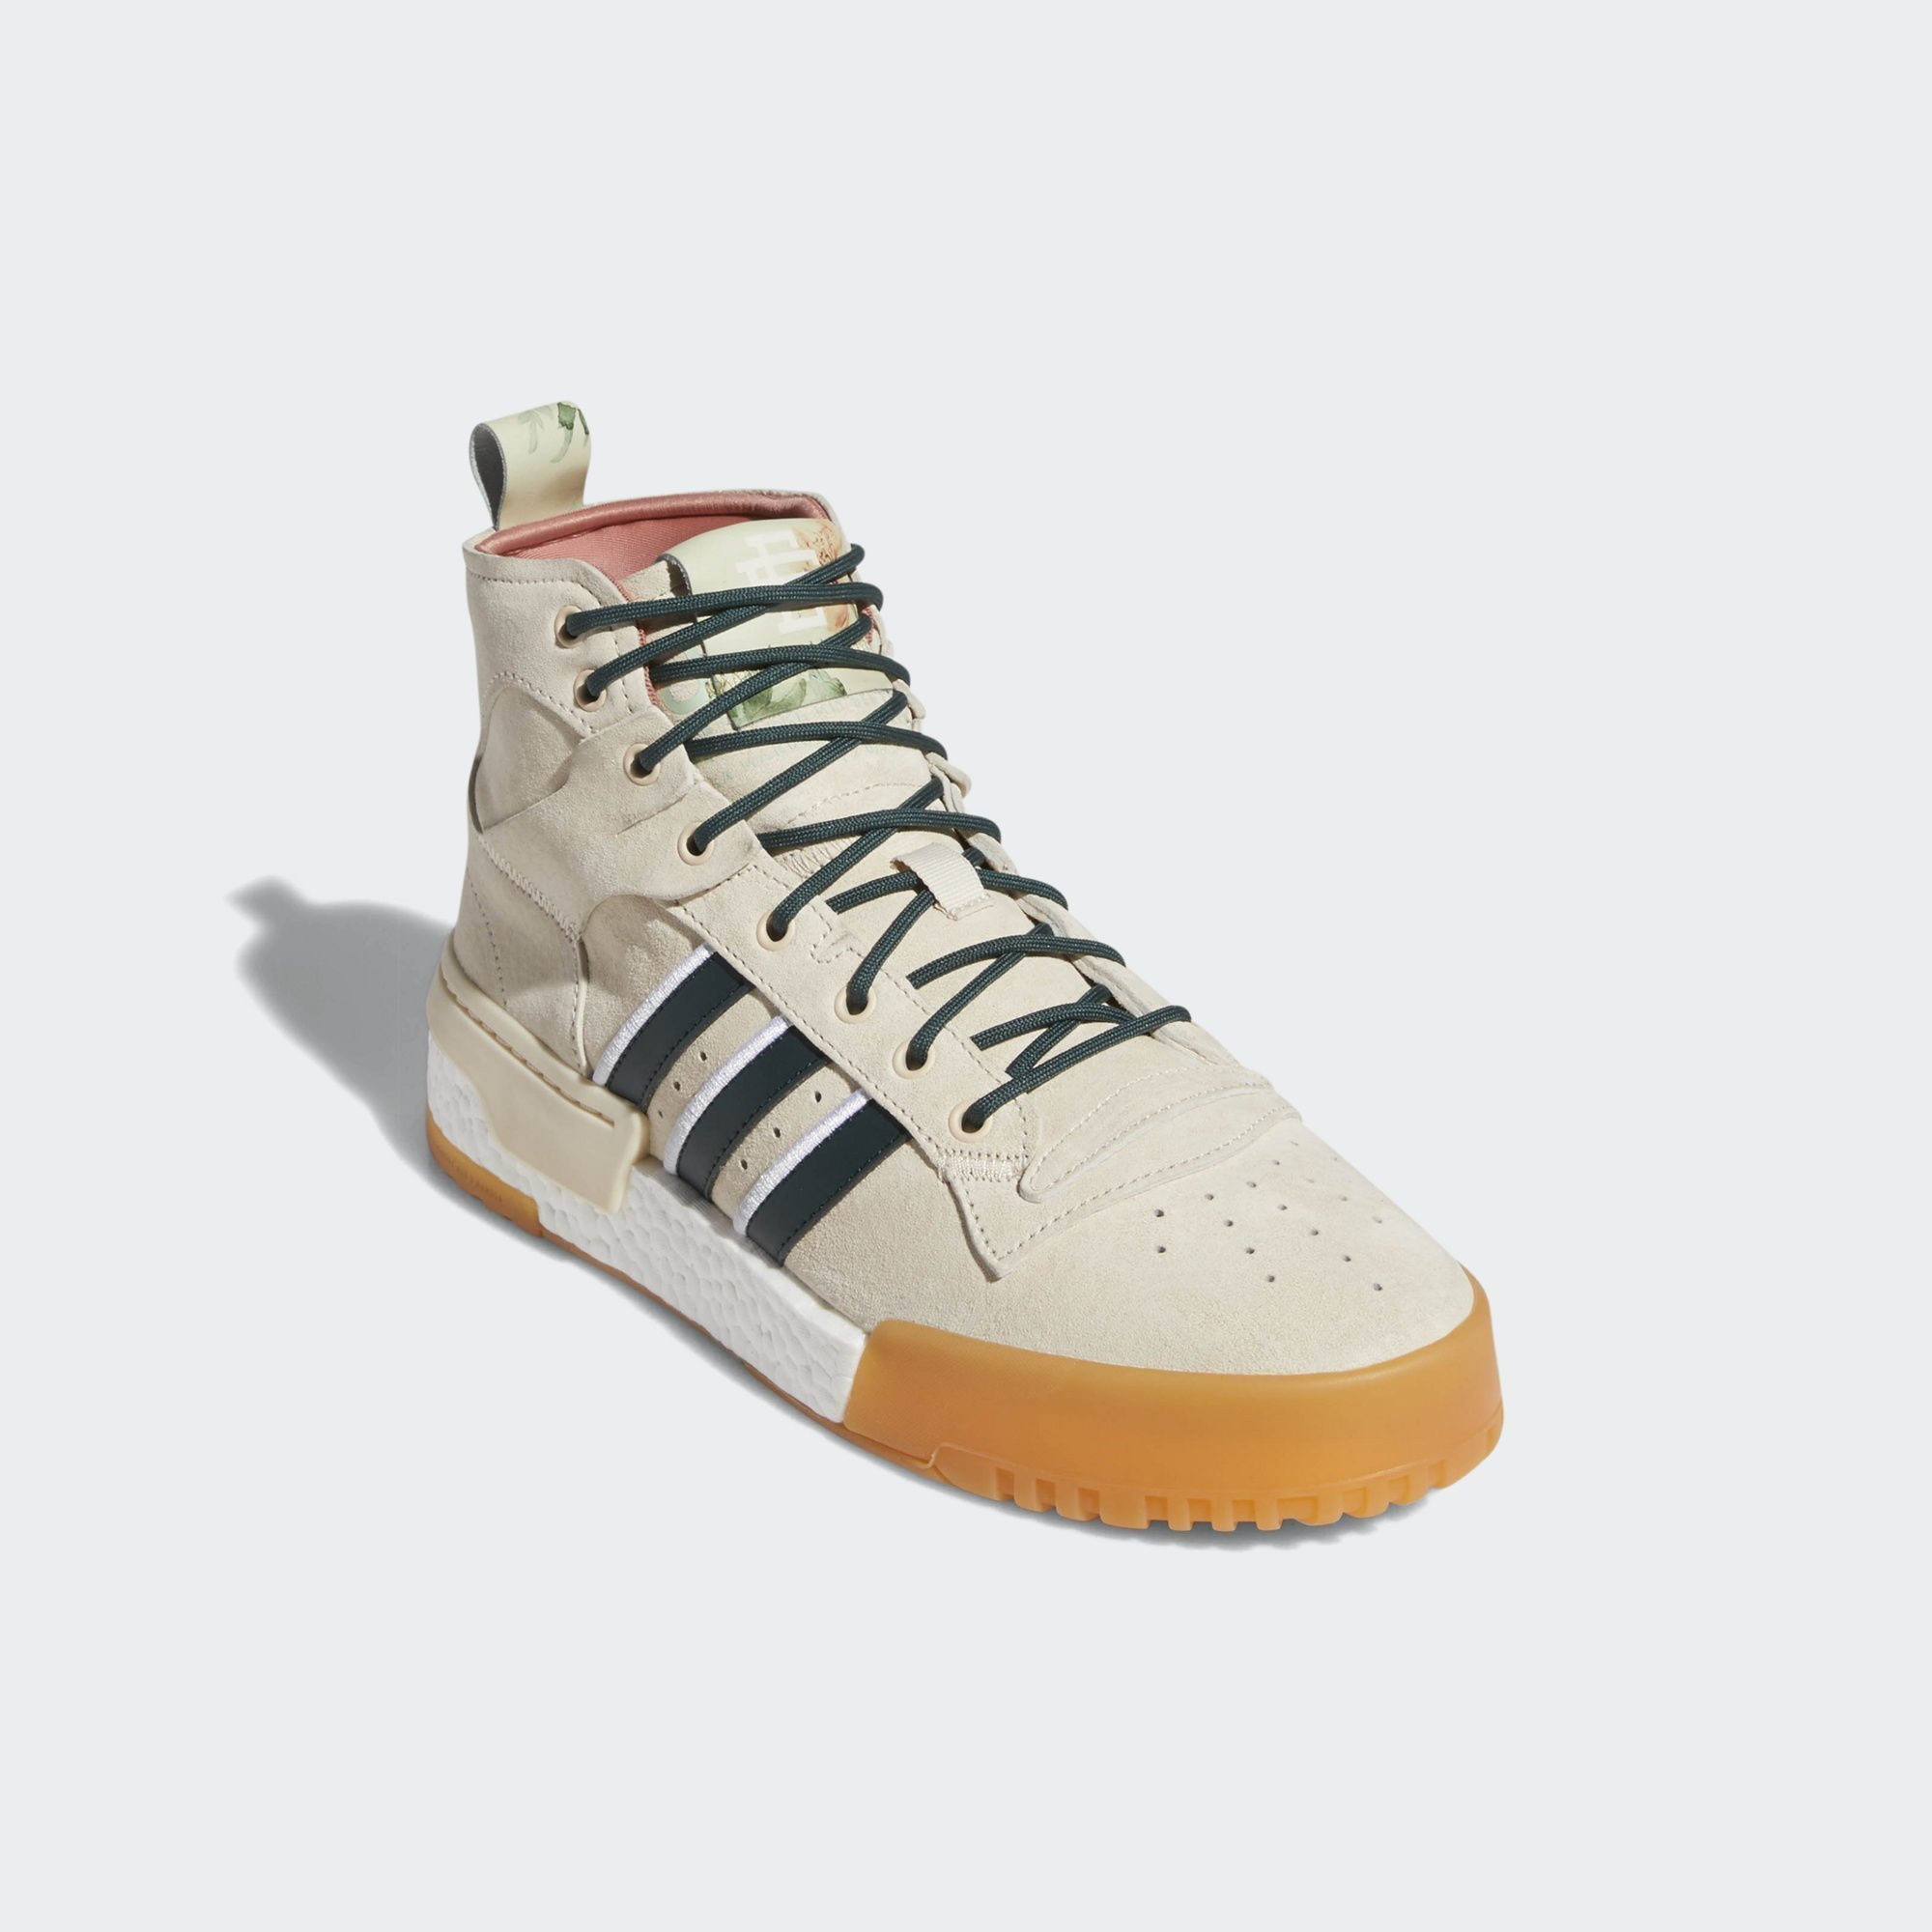 Adidas Eric Emanuel Rivalry RM Linen / Off White / Raw Pink (F35091)